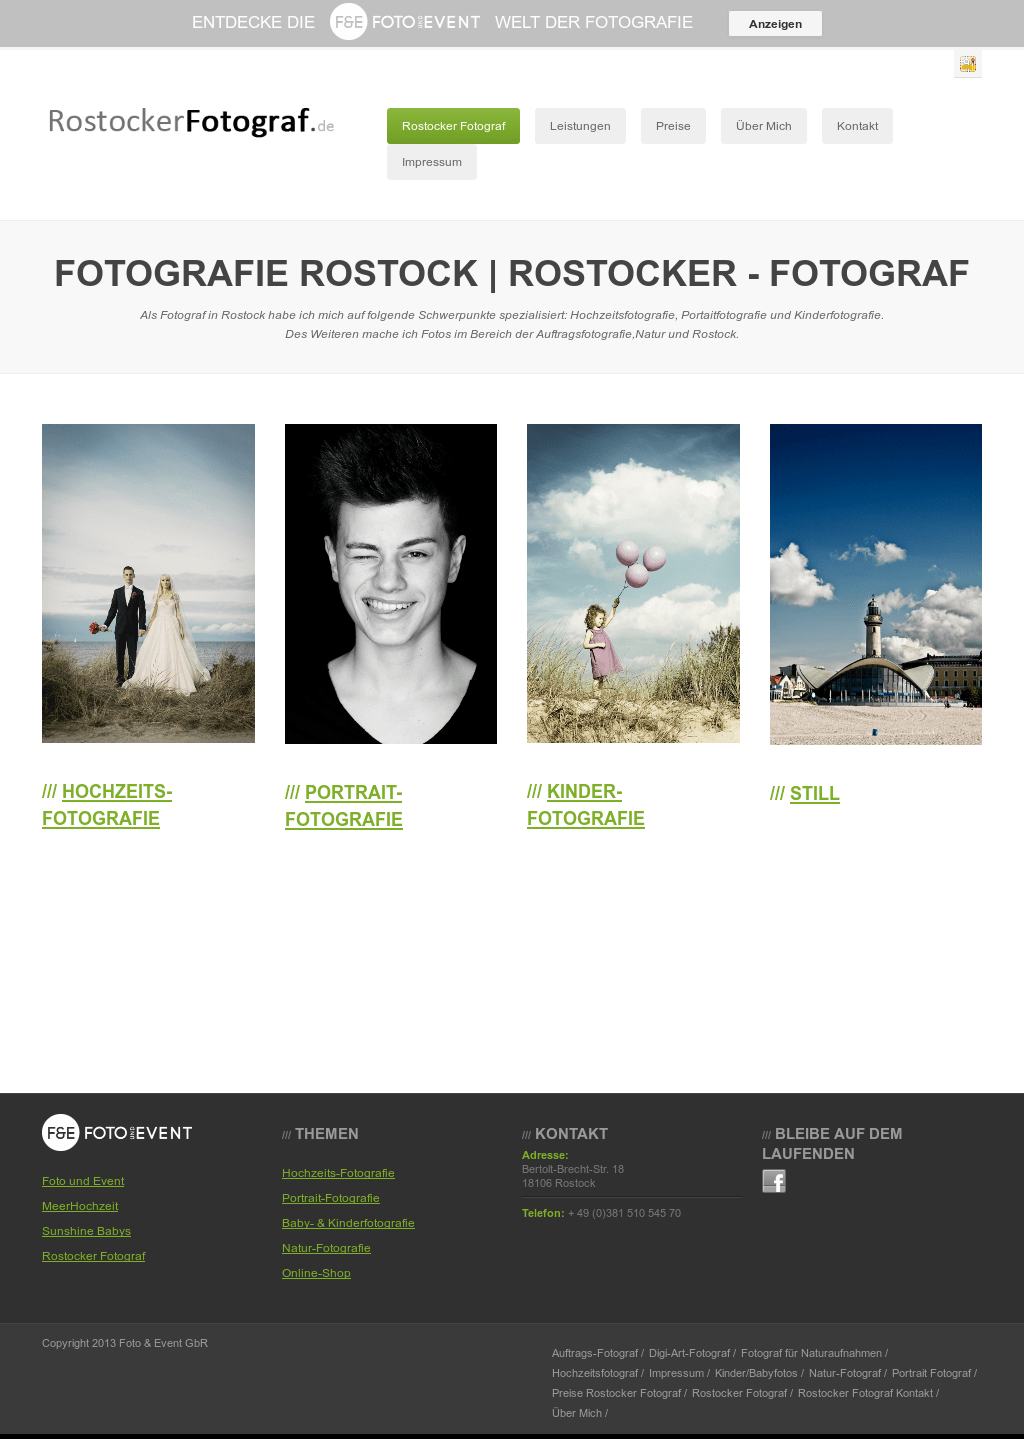 Fotograf In Rostock Rostocker Fotograf Competitors Revenue And Employees Owler